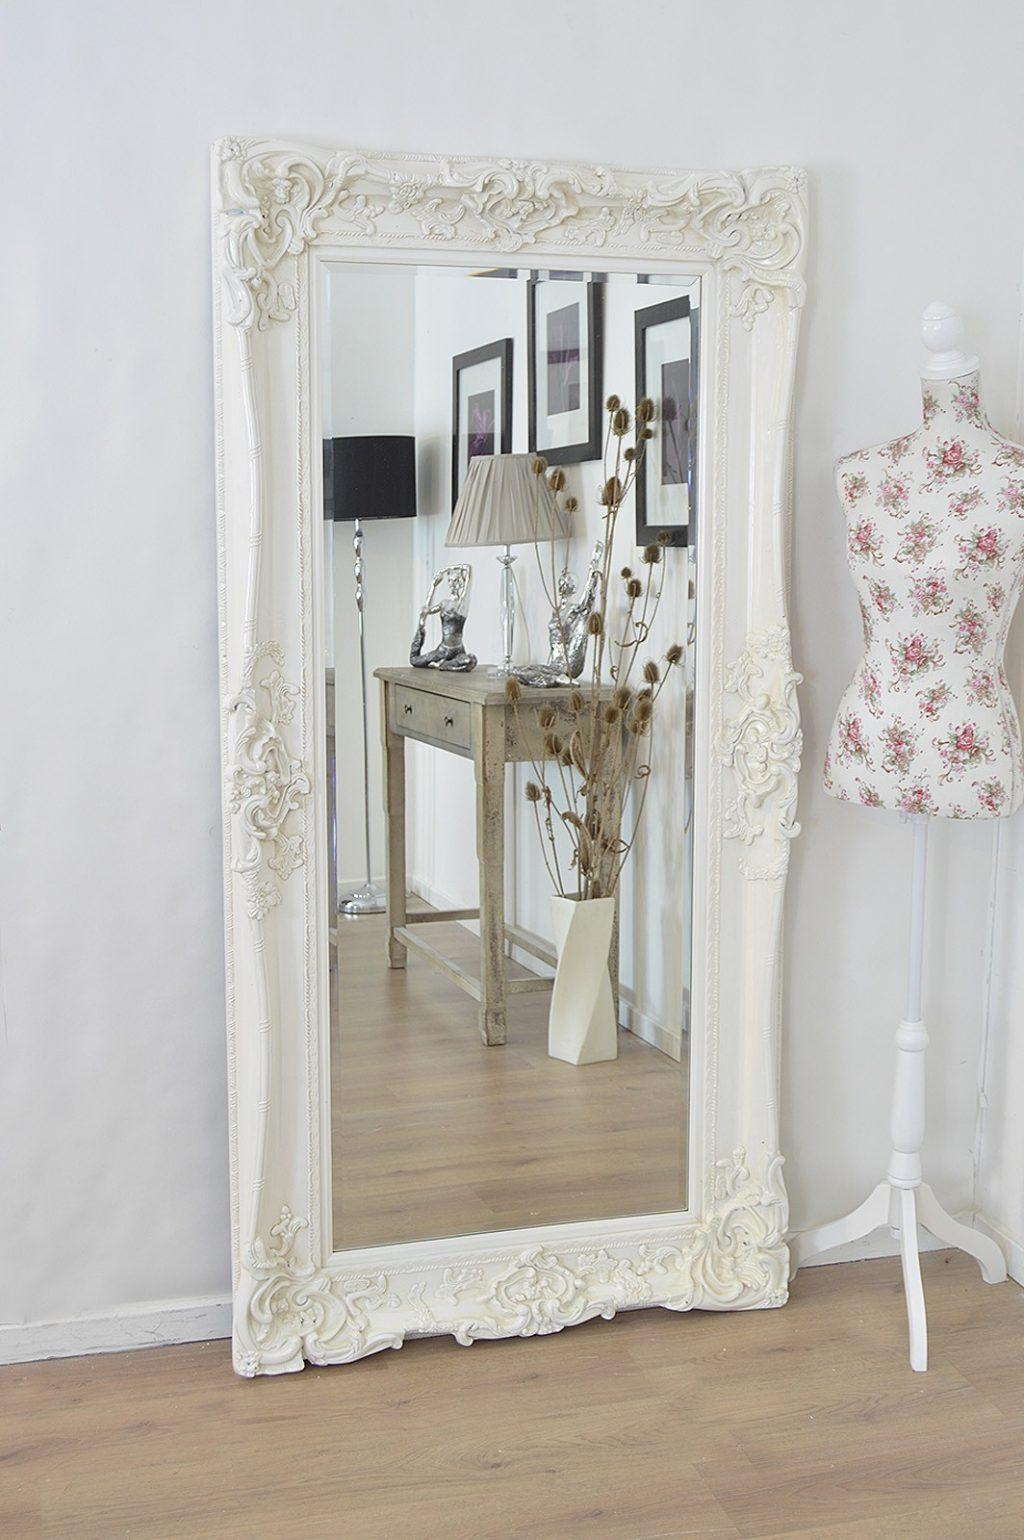 Shabby Chic Wall Mirror 73 Trendy Interior Or Fabulous Large Cream Intended For Cream Shabby Chic Mirror (Image 19 of 20)